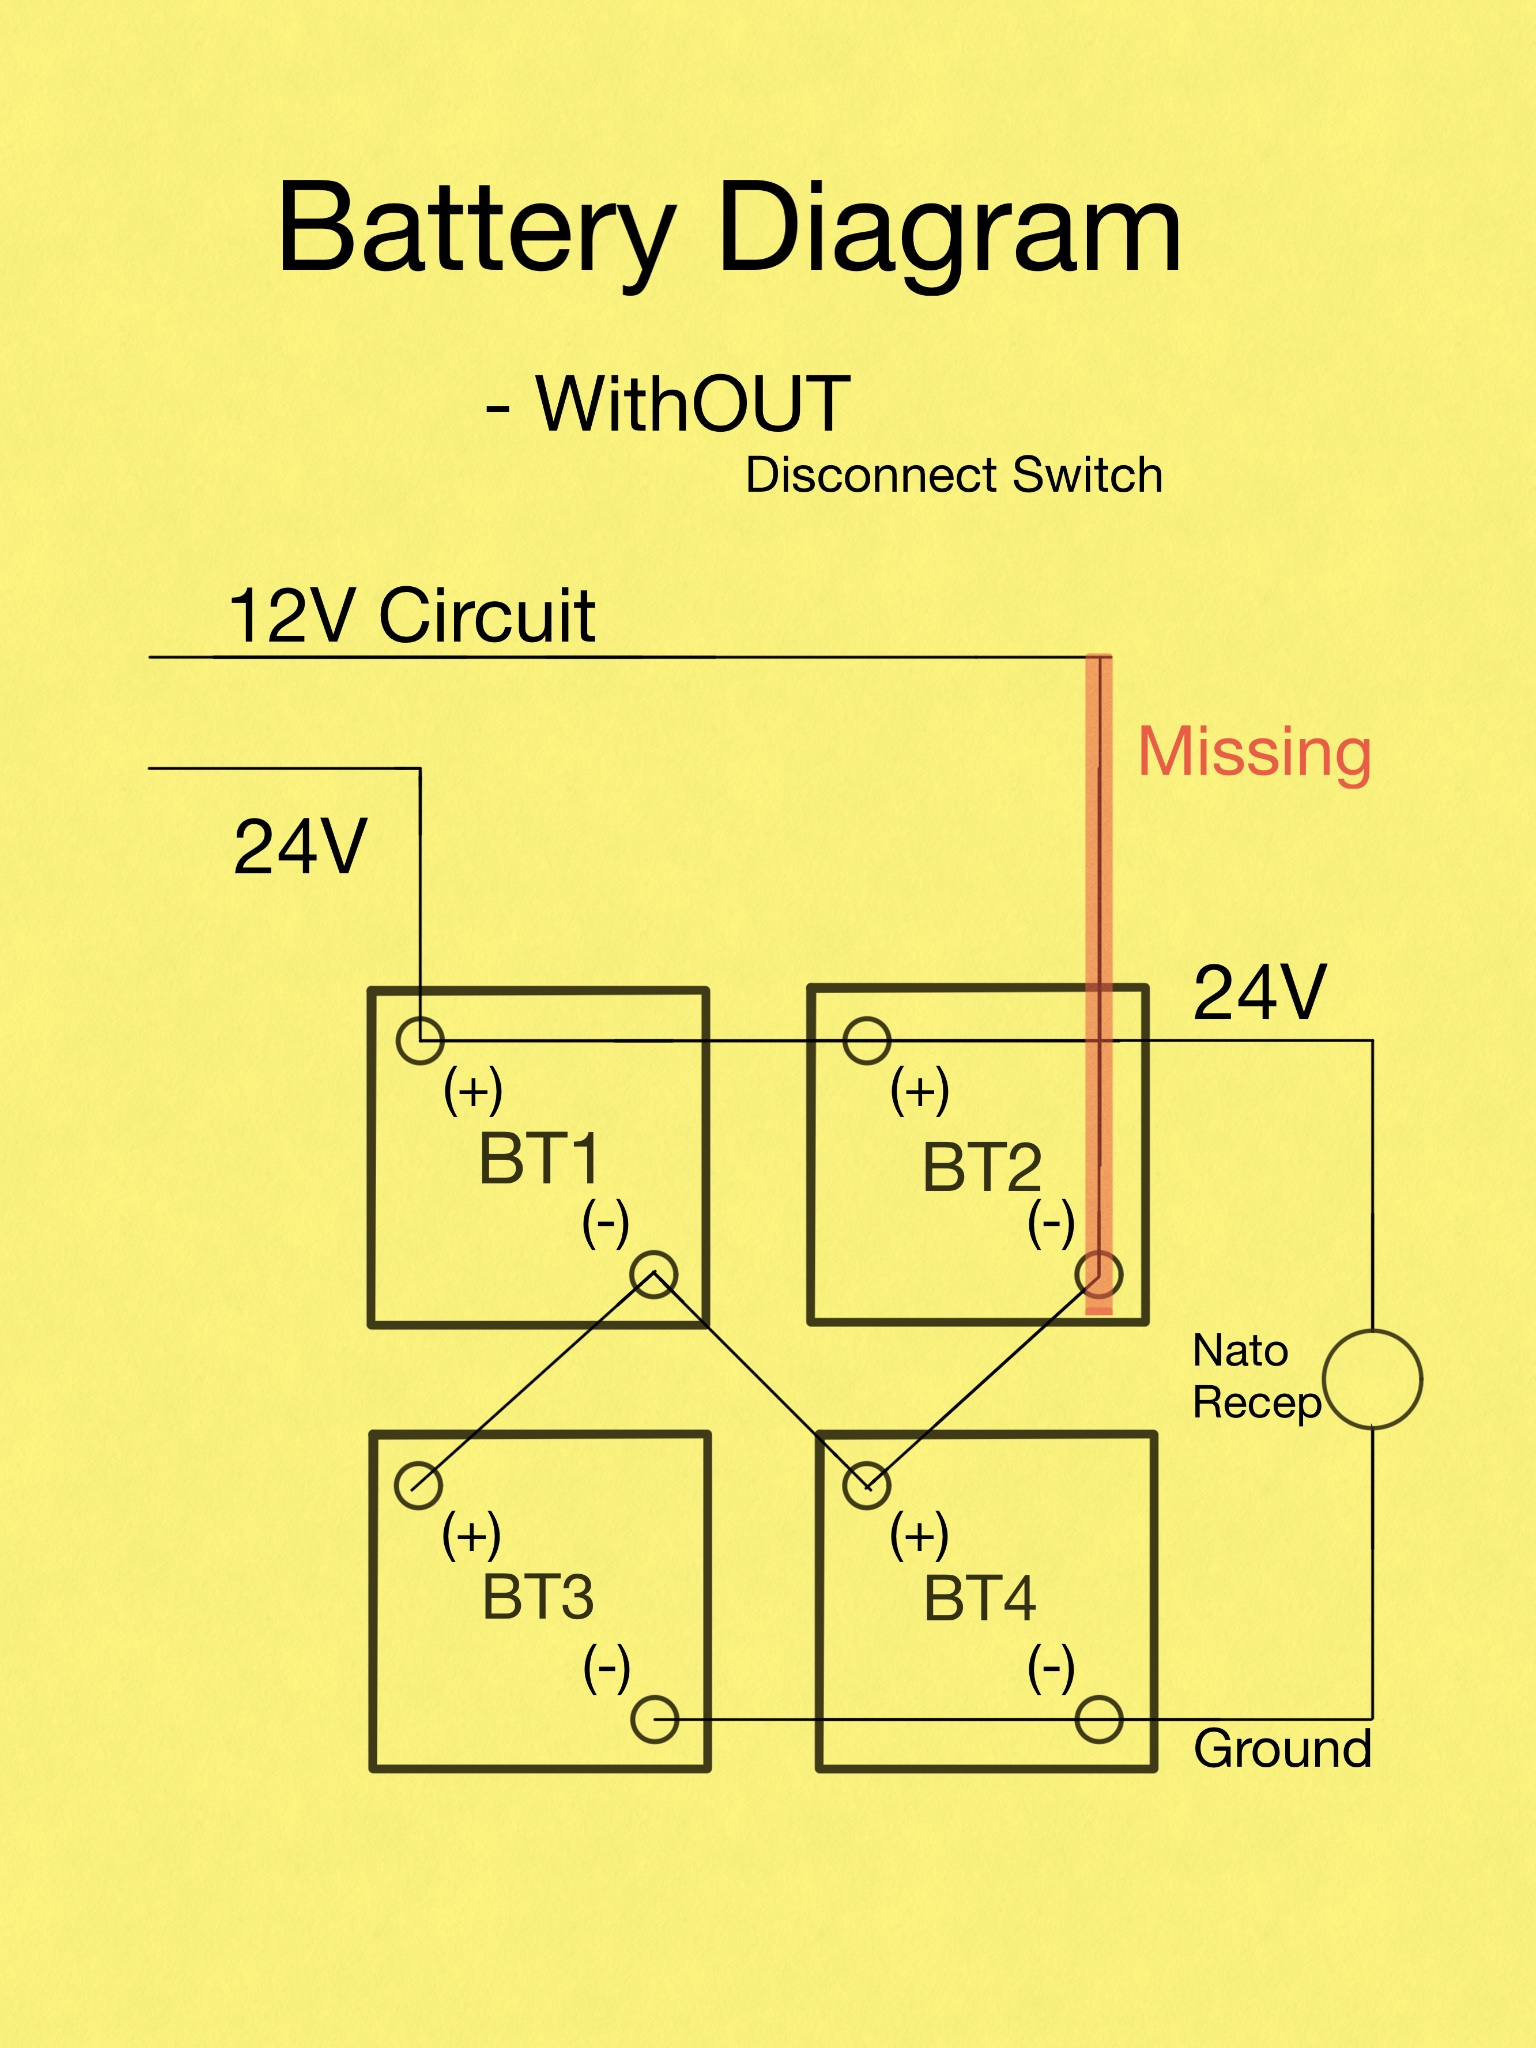 3239475 further Wiring Diagram Auxiliary Battery Caravan besides Refrigeration And Air Conditioning 30027001 together with 1997 Subaru Outback Radio Wiring Diagram 2017 Impreza 08 Stereo Help   Wiring Diagram besides Electrical Wiring Diagram Simple. on air conditioning circuit diagram